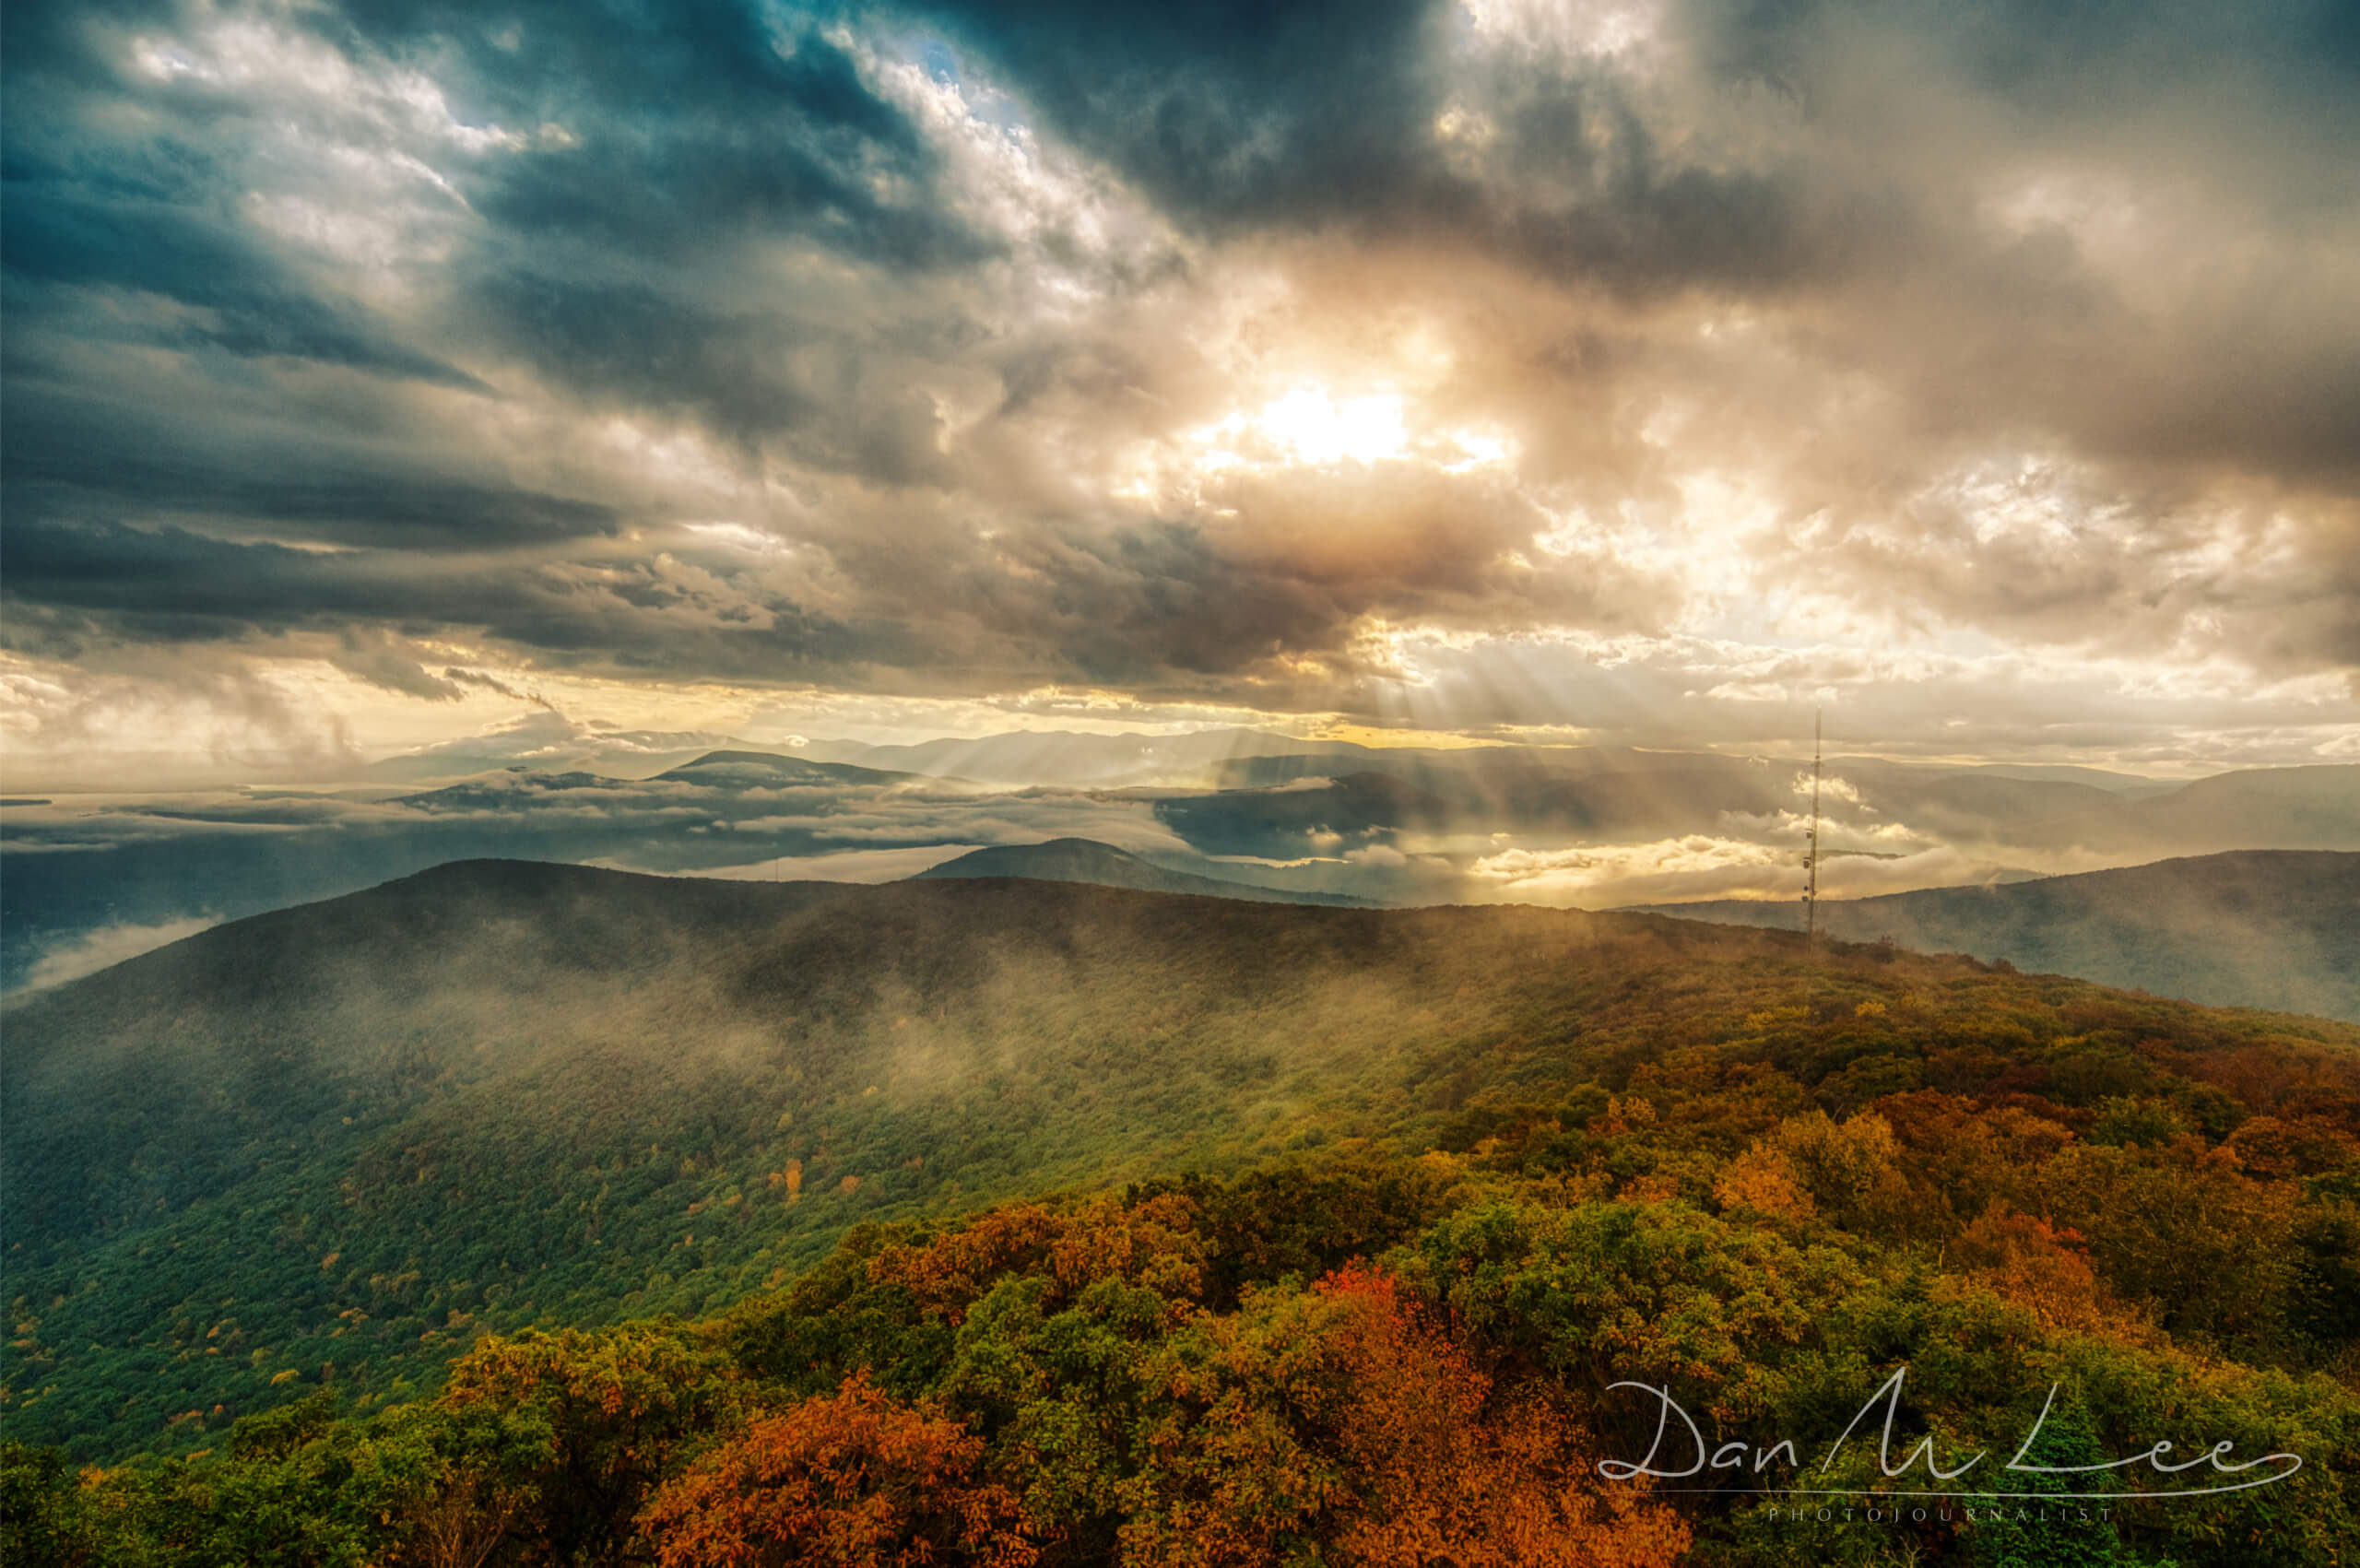 Overlook Woodstock New York Landscape Photography Dan M Lee